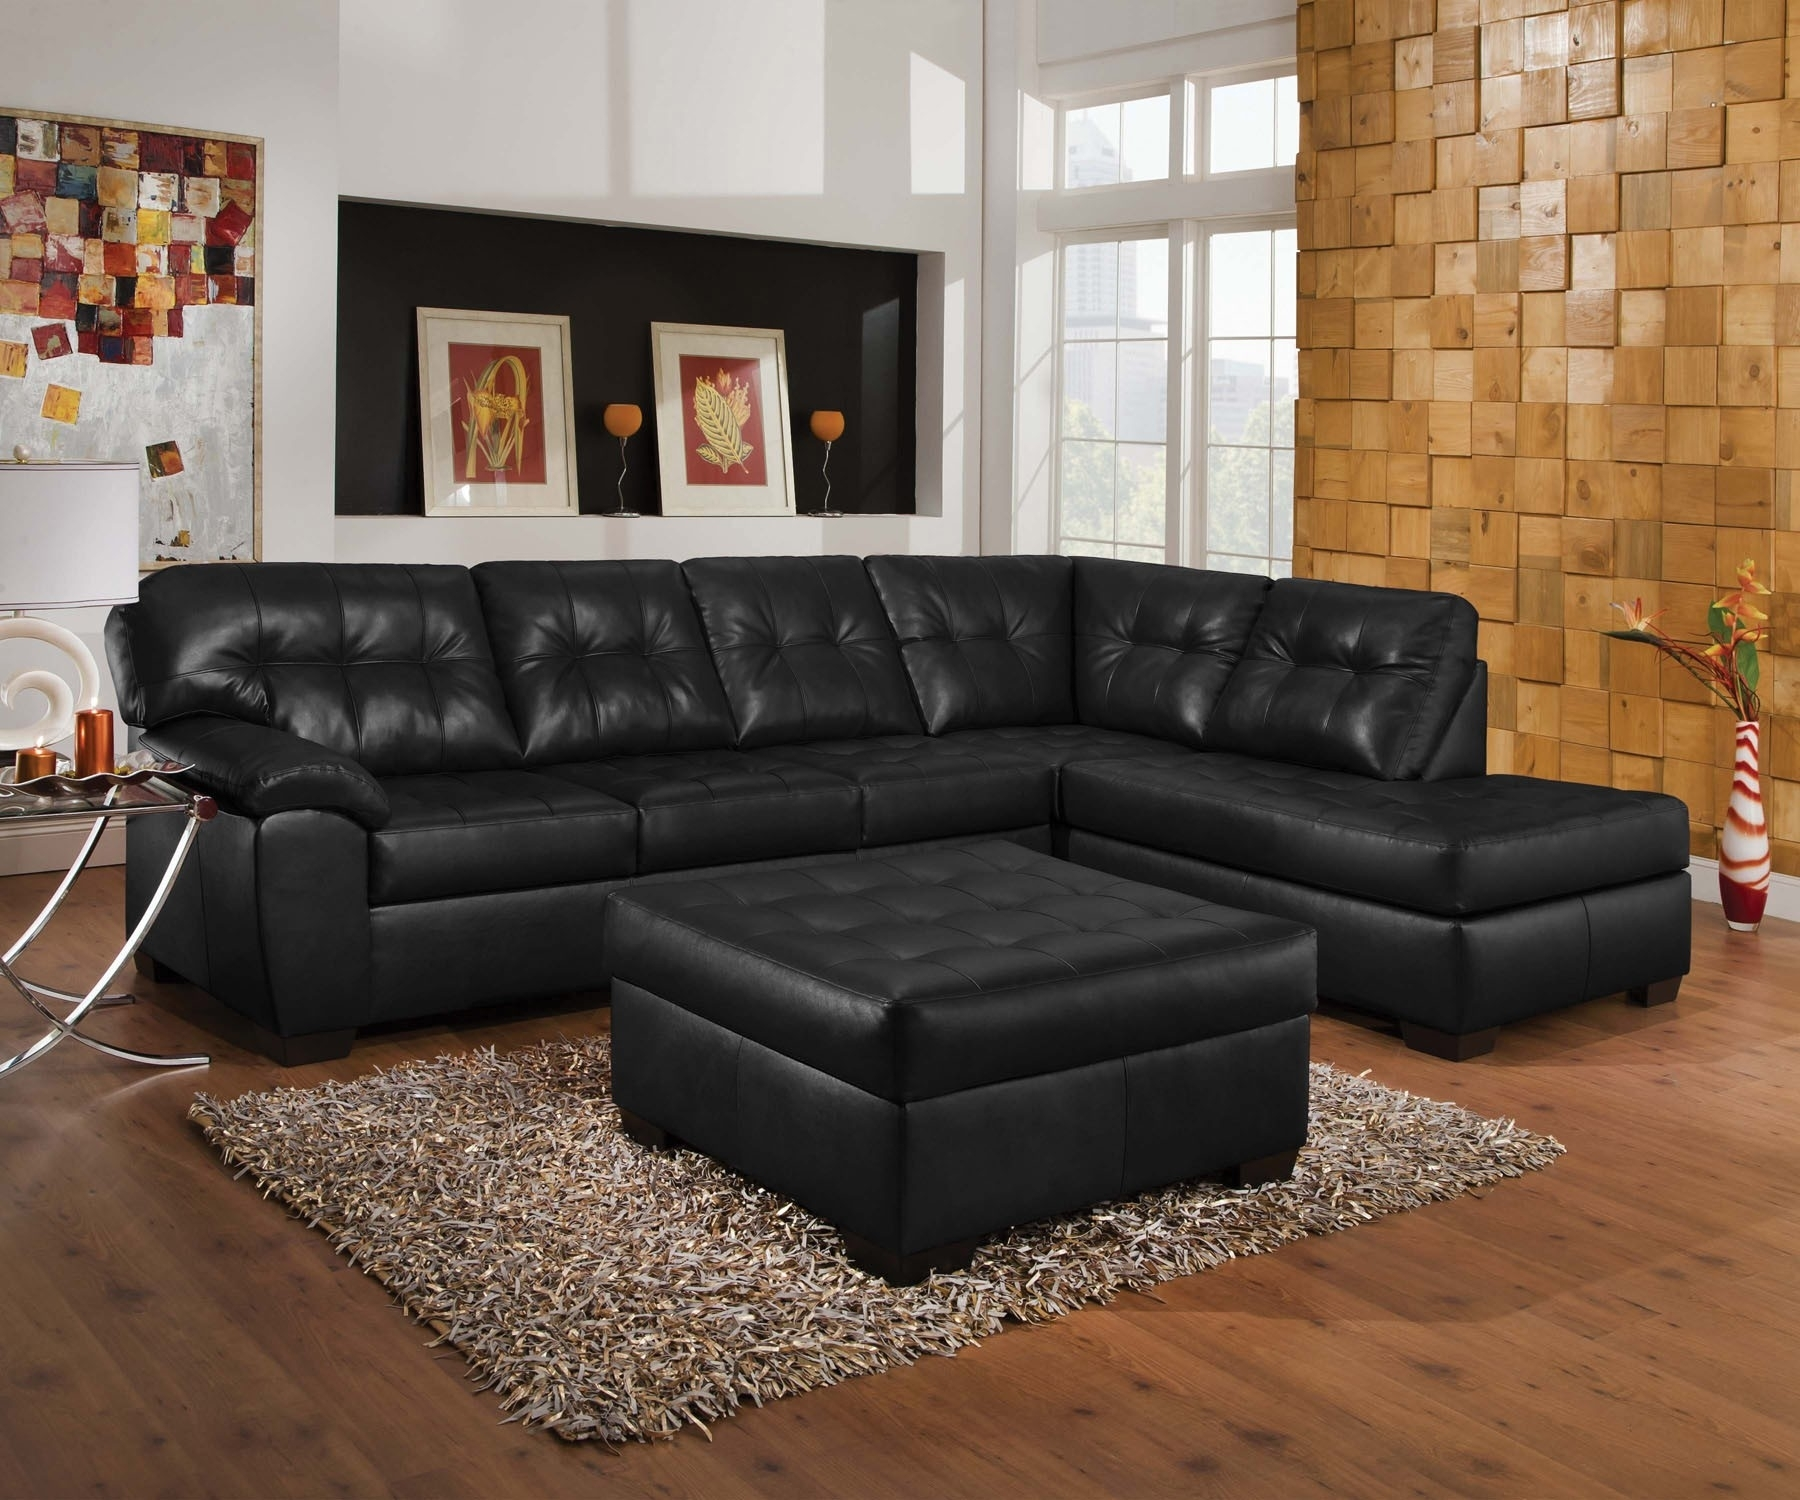 L Shaped Espresso Leather Recliner Sofa With Chaise In White Couches Pertaining To Sectional Sofas At Bangalore (Image 5 of 10)